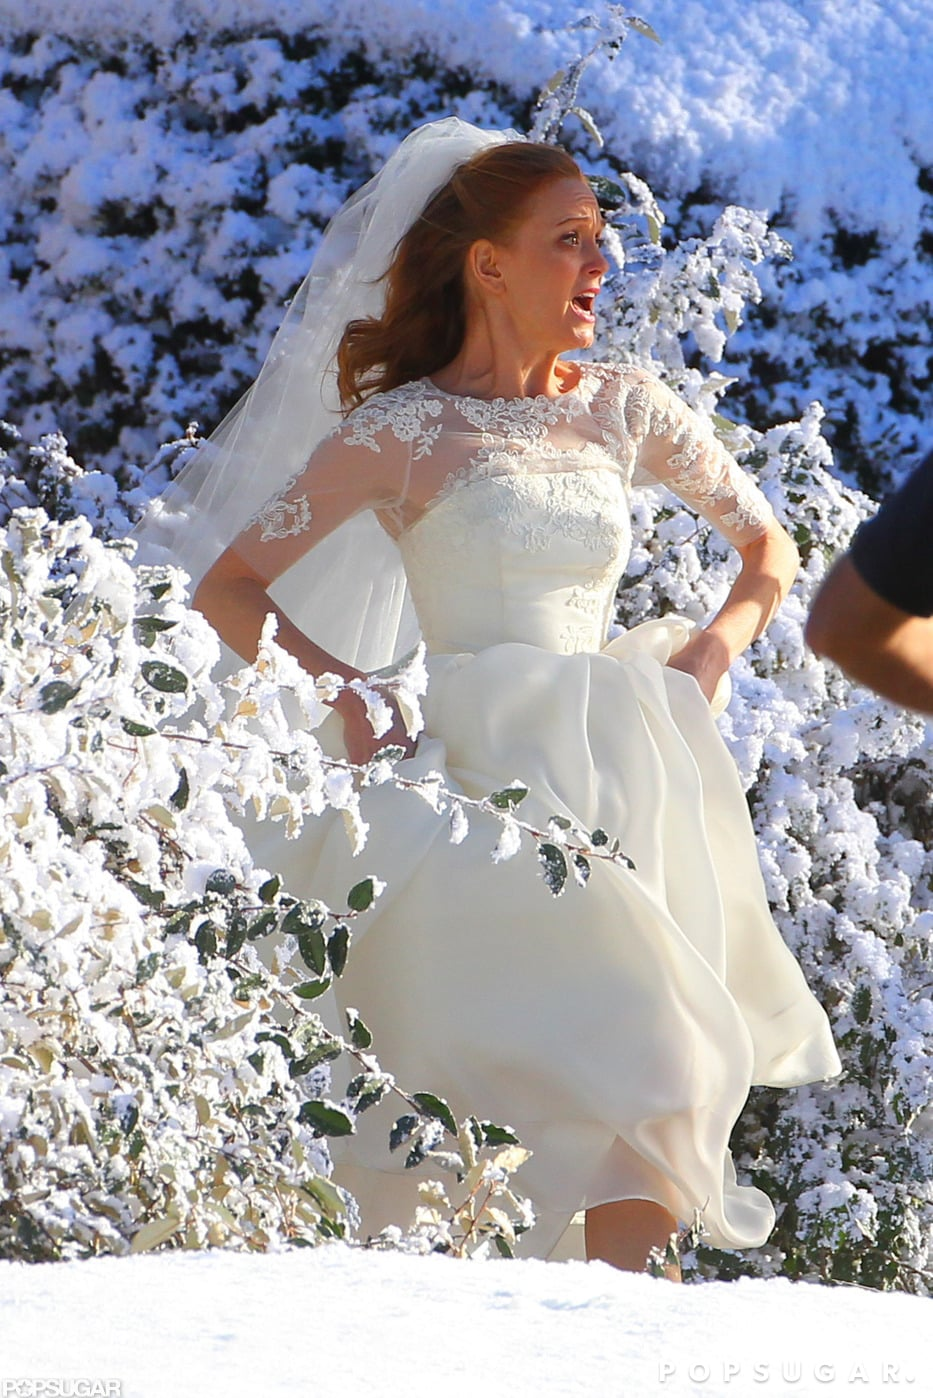 Jayma Mays filmed a scene for Glee while wearing a wedding dress.